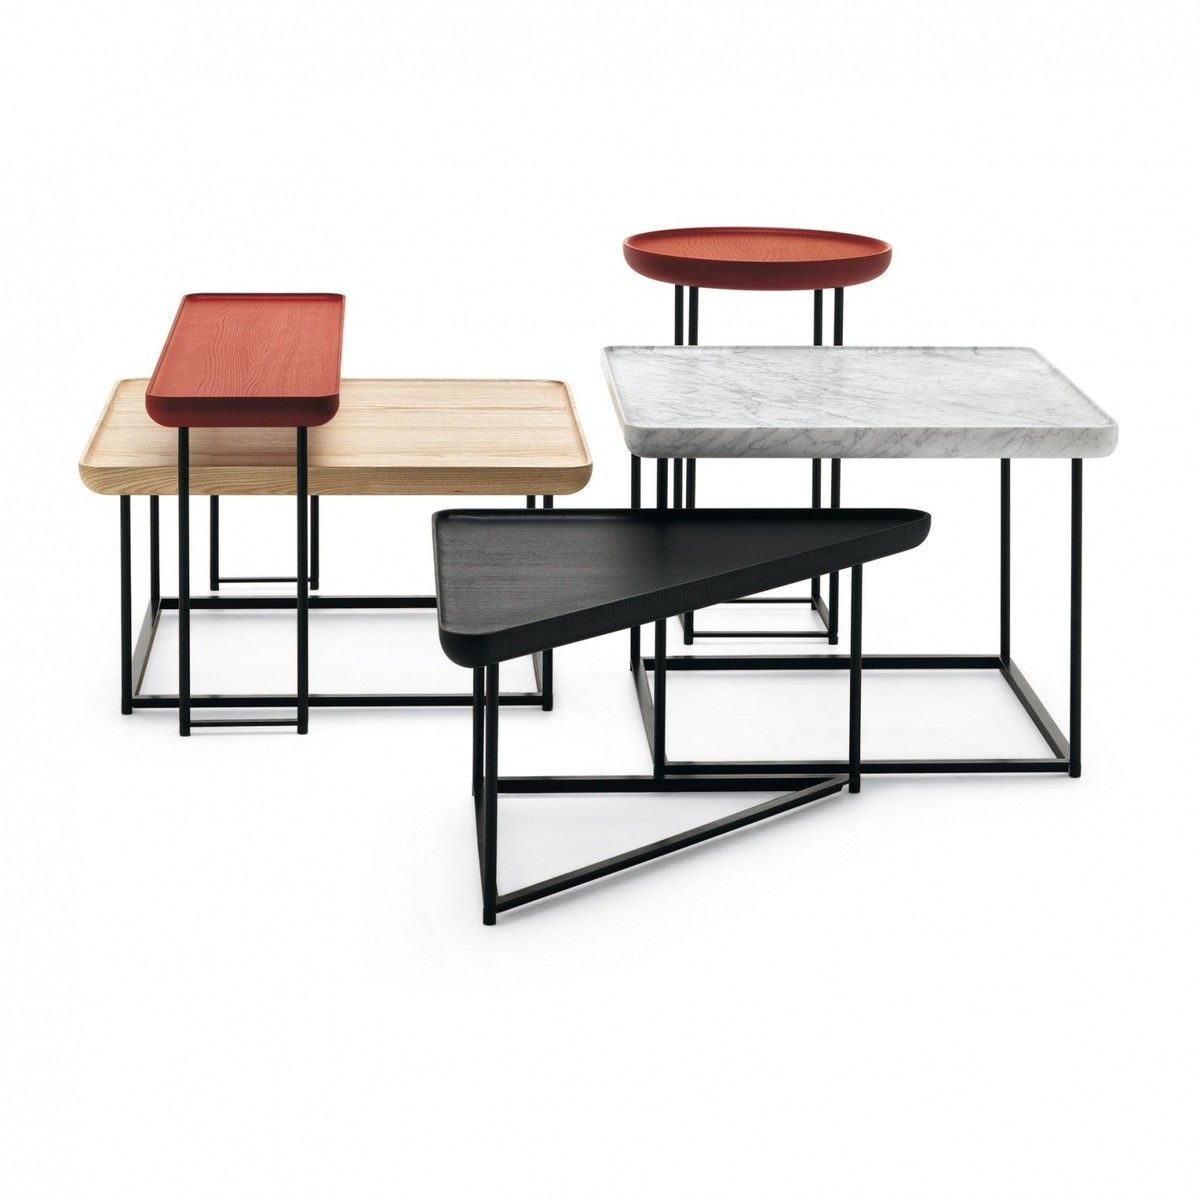 Torei table d 39 appoint triangulaire cassina for Table triangulaire design